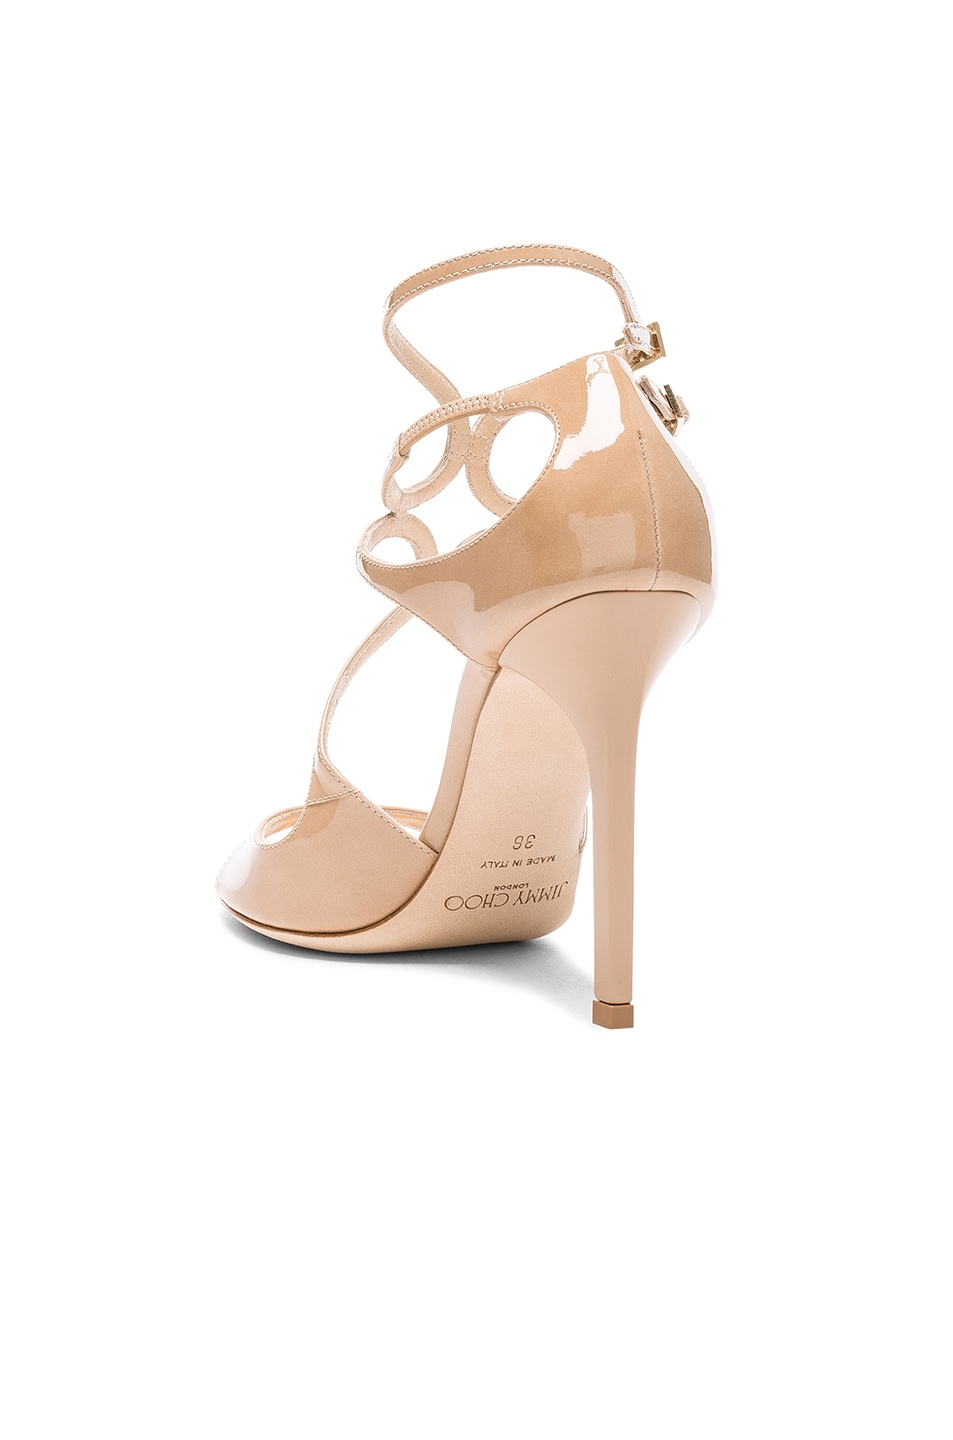 Image 3 of Jimmy Choo Patent Leather Lang Heels in Nude